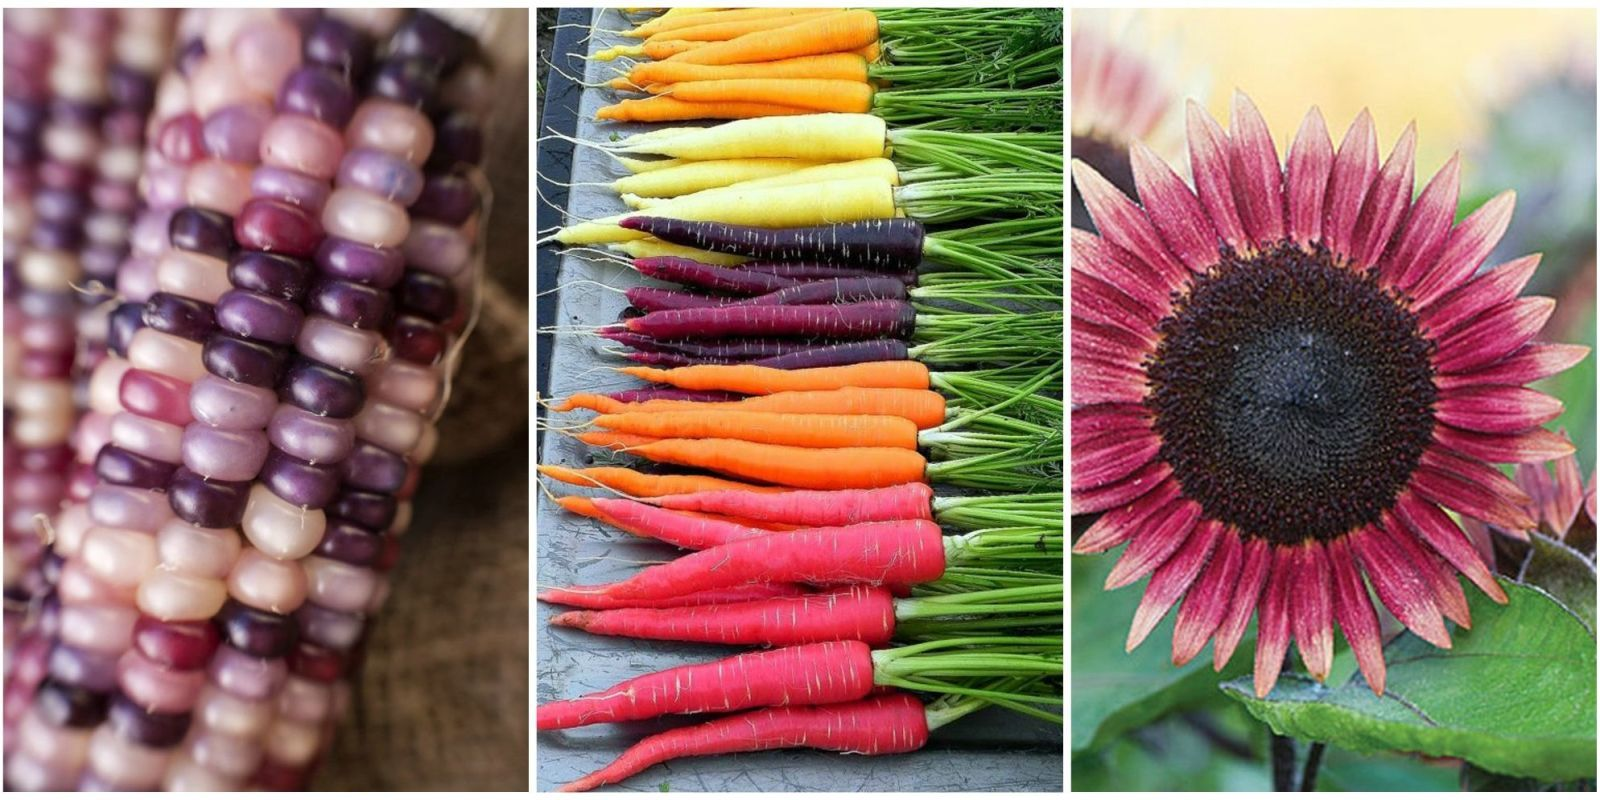 Turn Your Garden, Yard, And Dinner Table Into A Colorful Scene By Getting  Yourself Some Of These Unique Seeds So You Can Grow Pink Sunflowers, ...